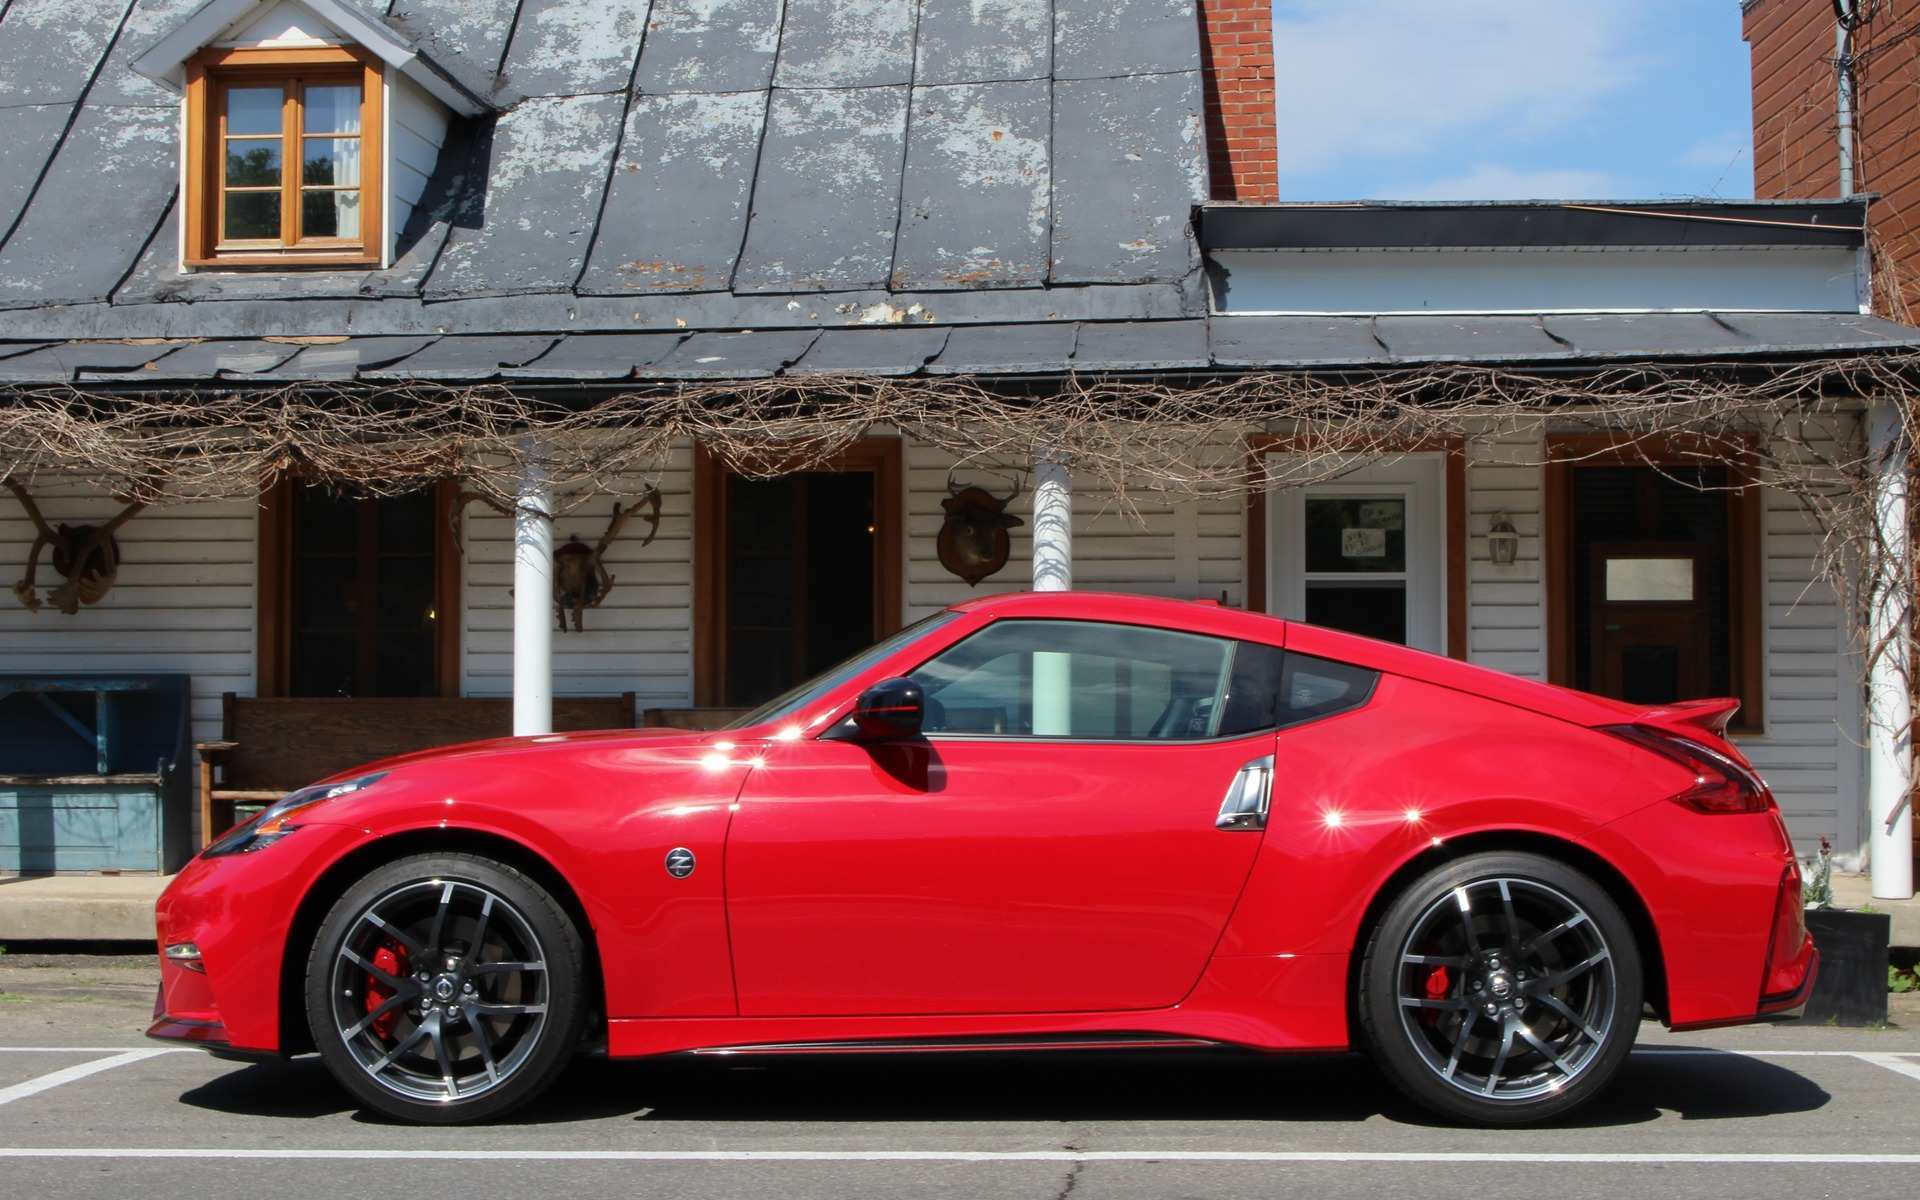 48 New 2019 Nissan Z Turbo Nismo Rumors